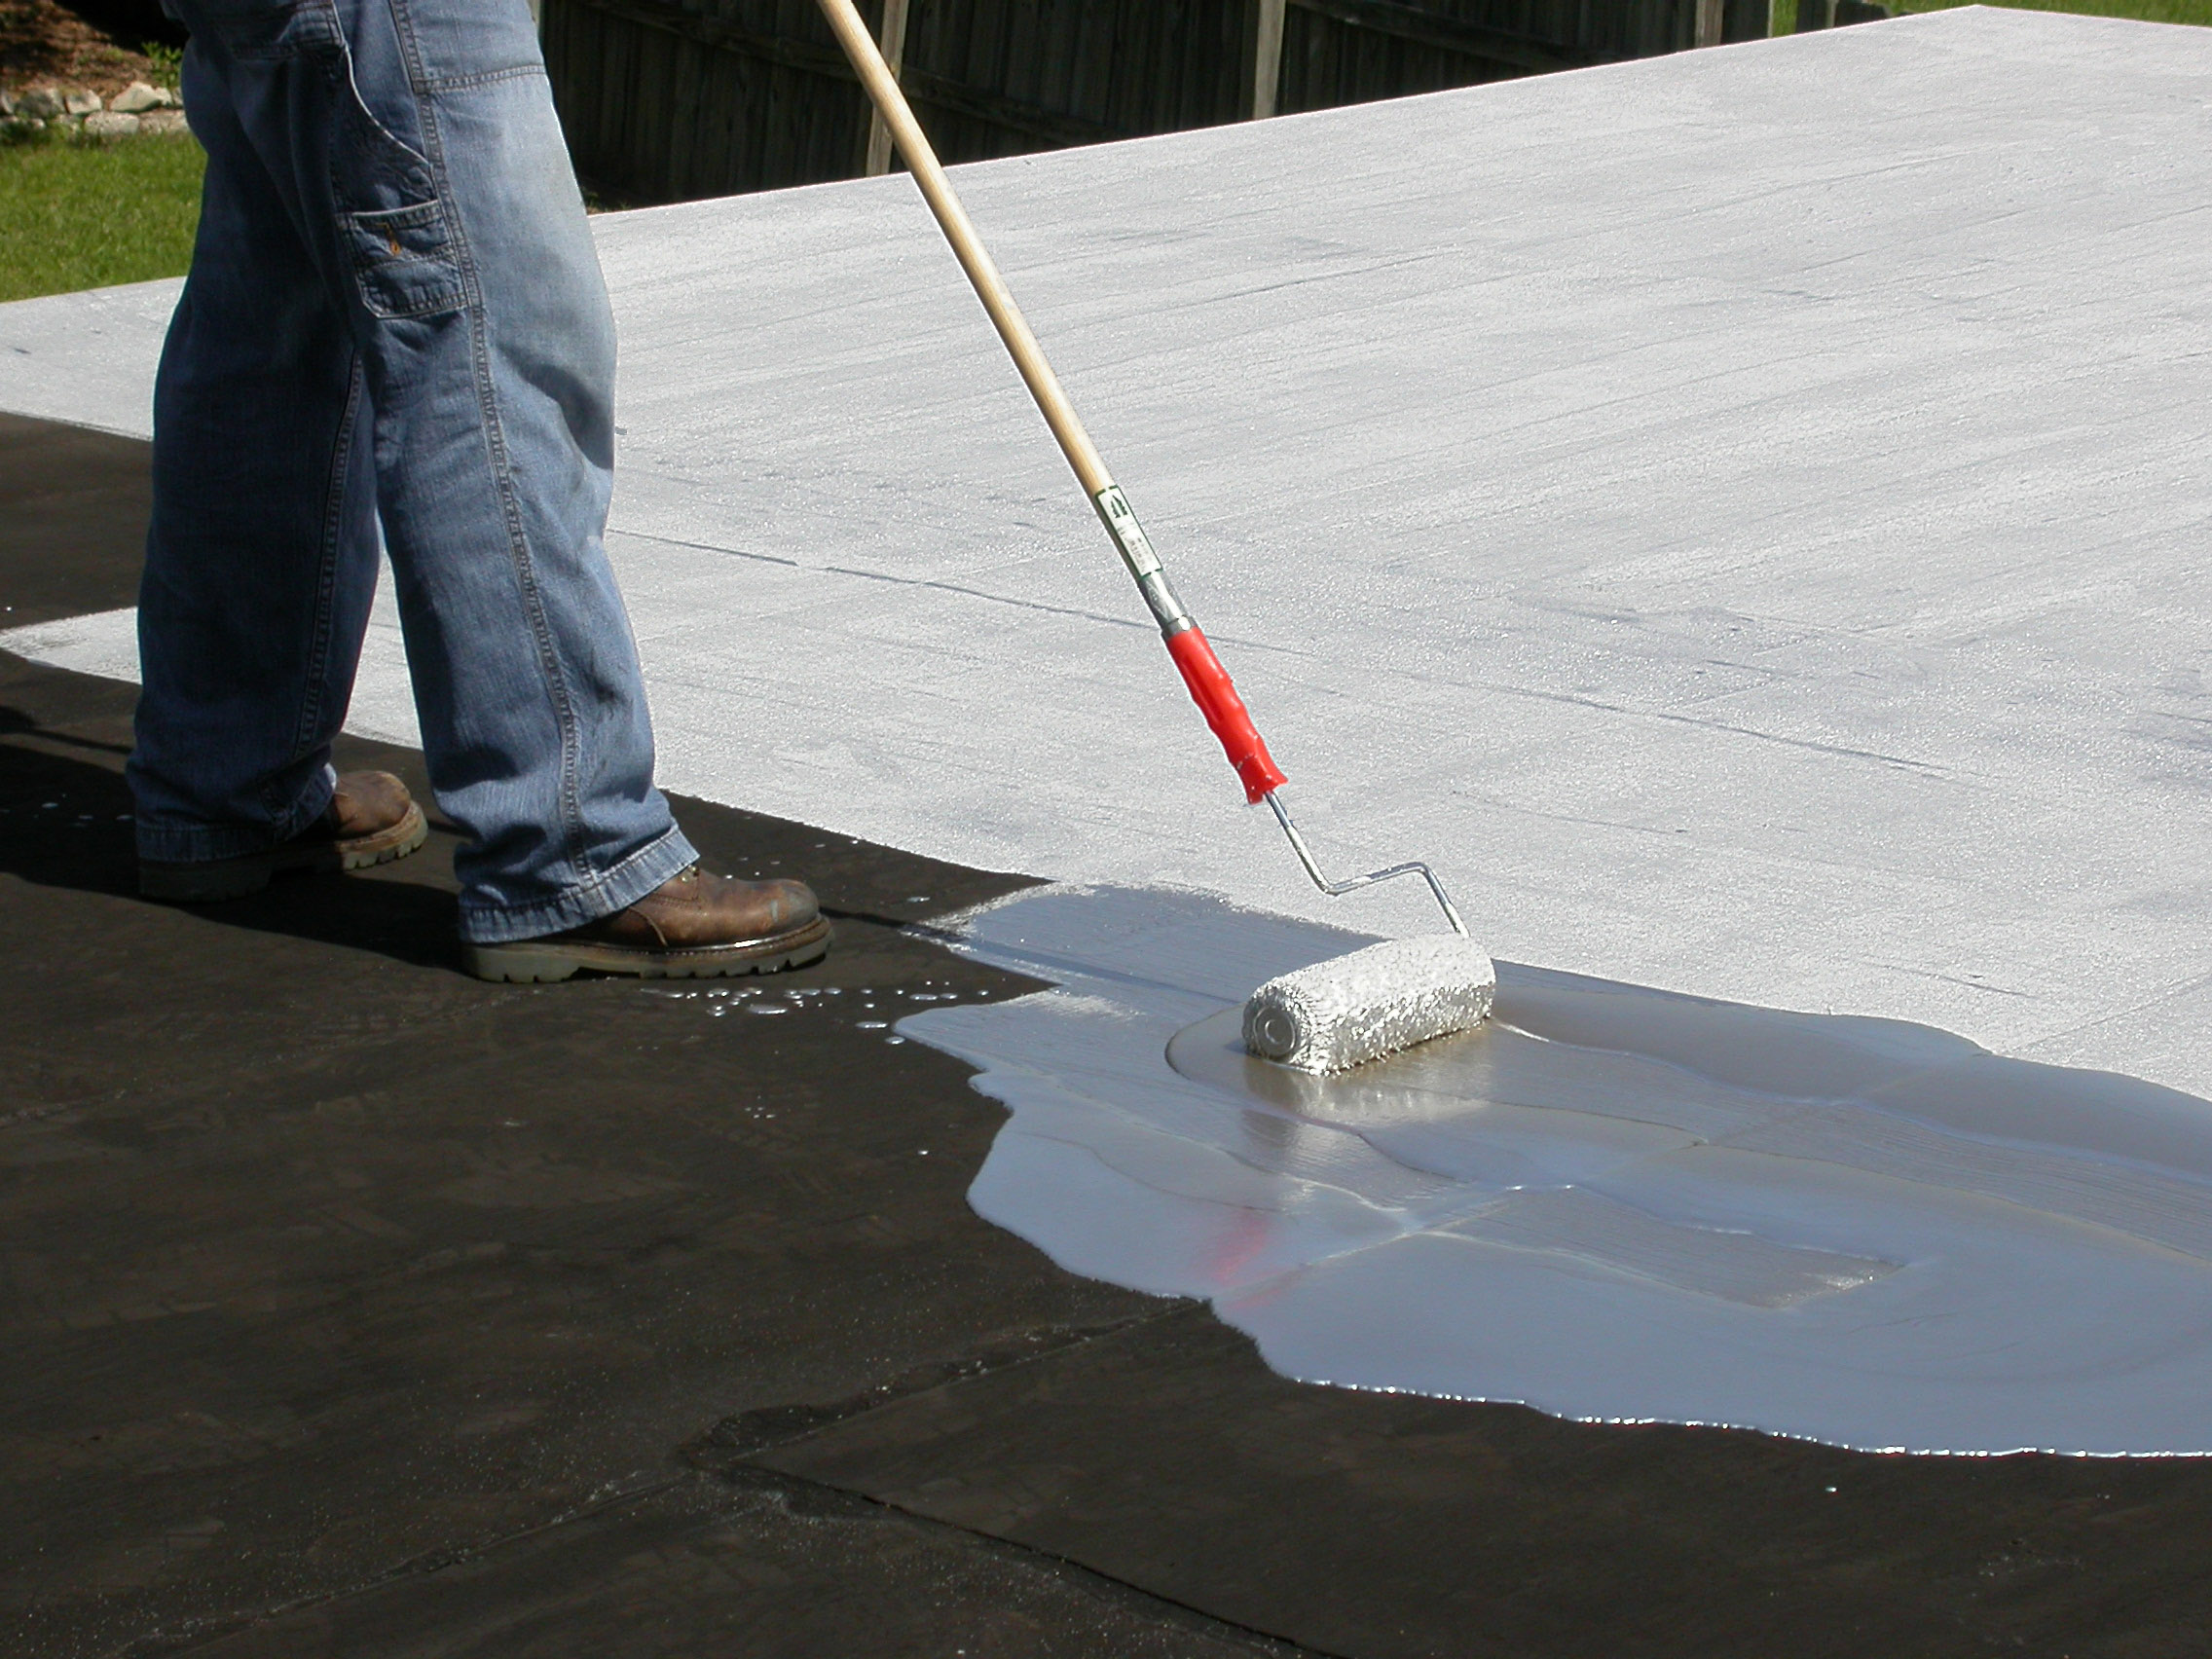 Global Waterproofing Coating Market 2020 Growth Drivers, Investment  Opportunity and Product Developments 2025 – Owned